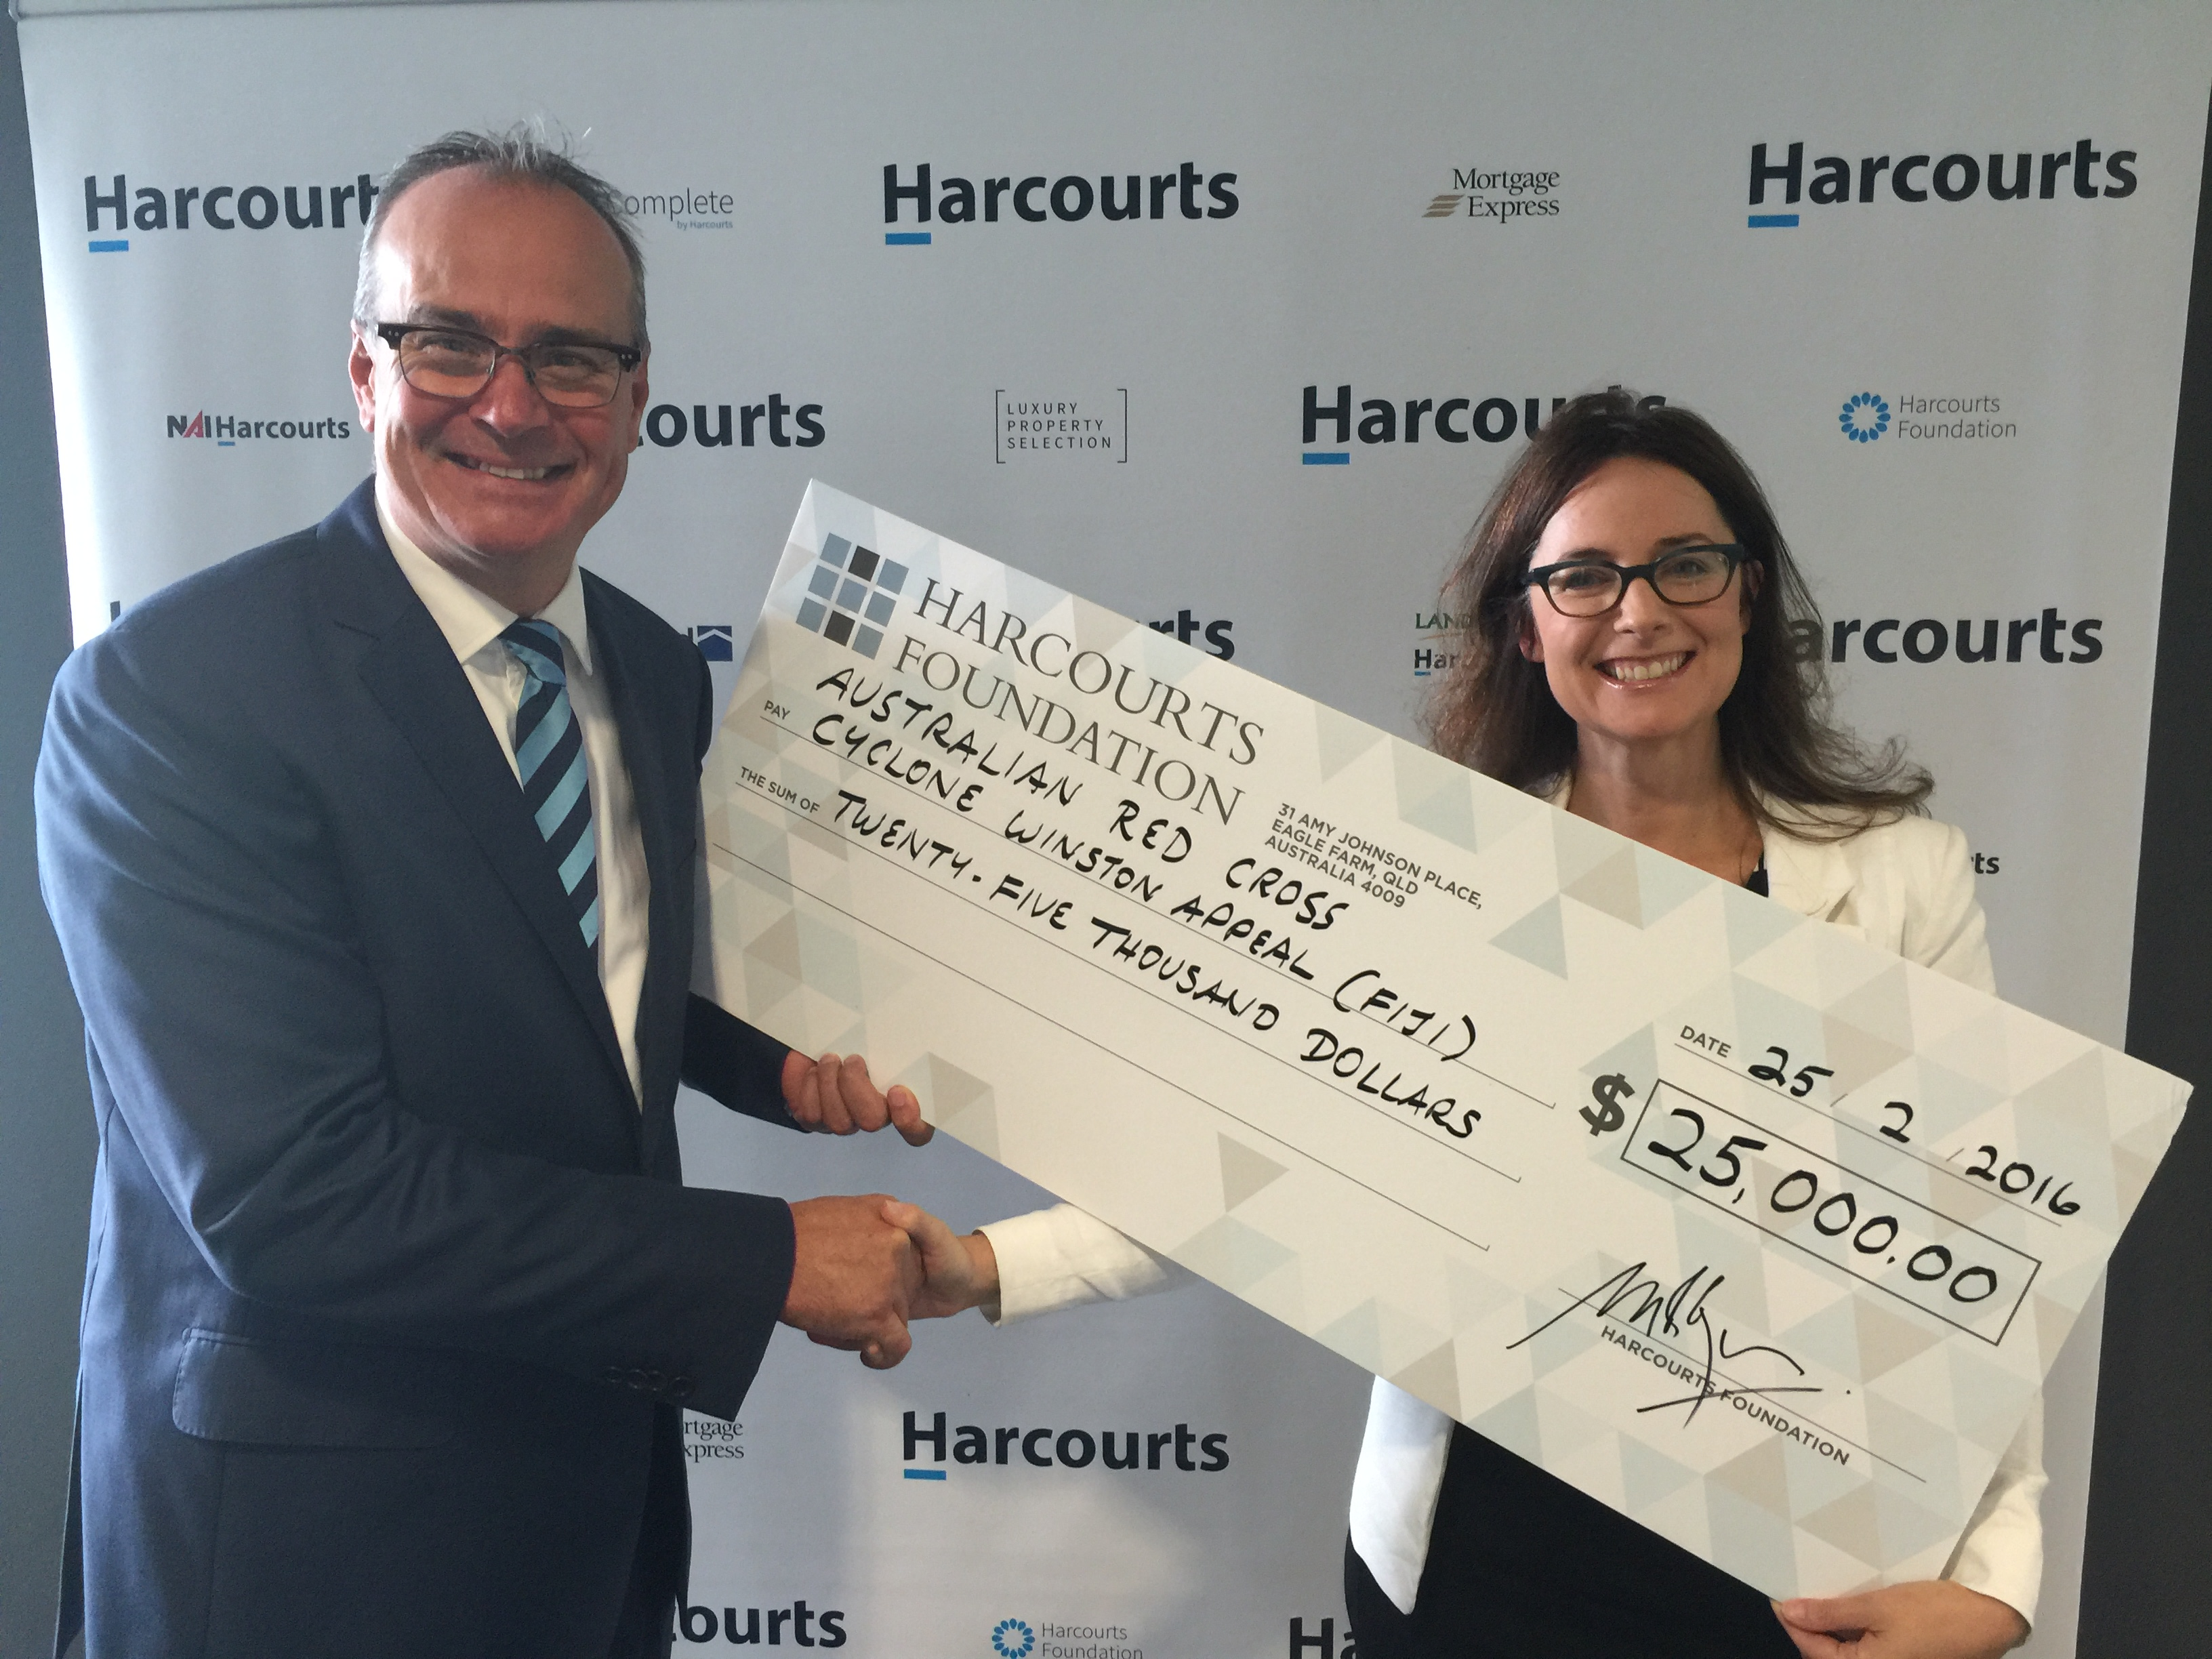 Harcourts Australian Operations Manager, Marcus Williams, presents the donation for Fiji recovery efforts to Red Cross Australia's Trusts and Foundation Manager, Belinda Collins.